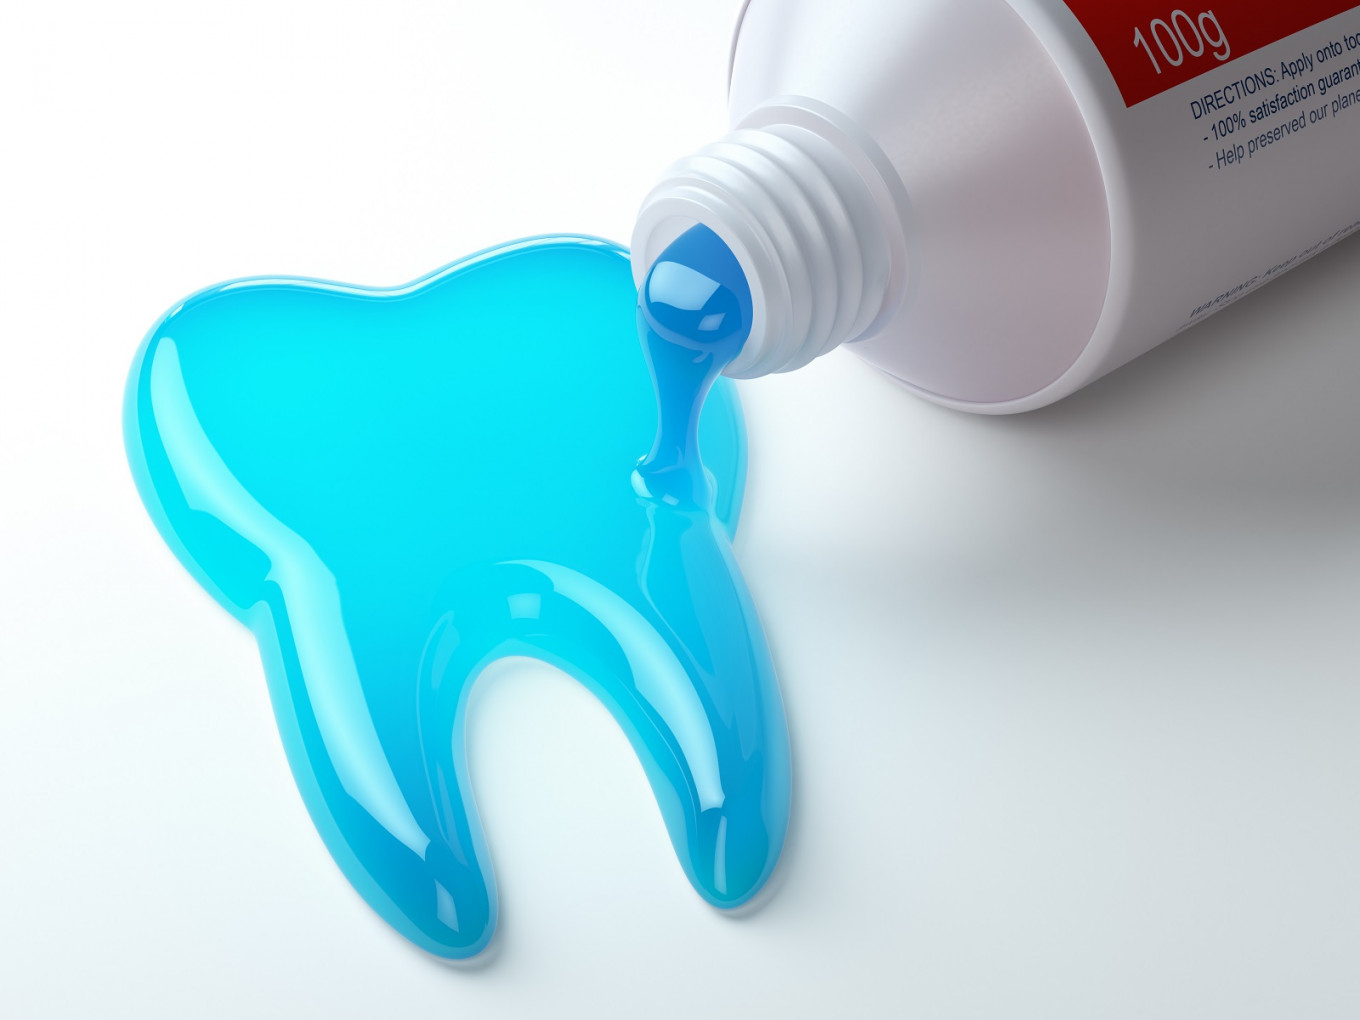 Colgate Total toothpaste to relaunch, this time sans triclosan